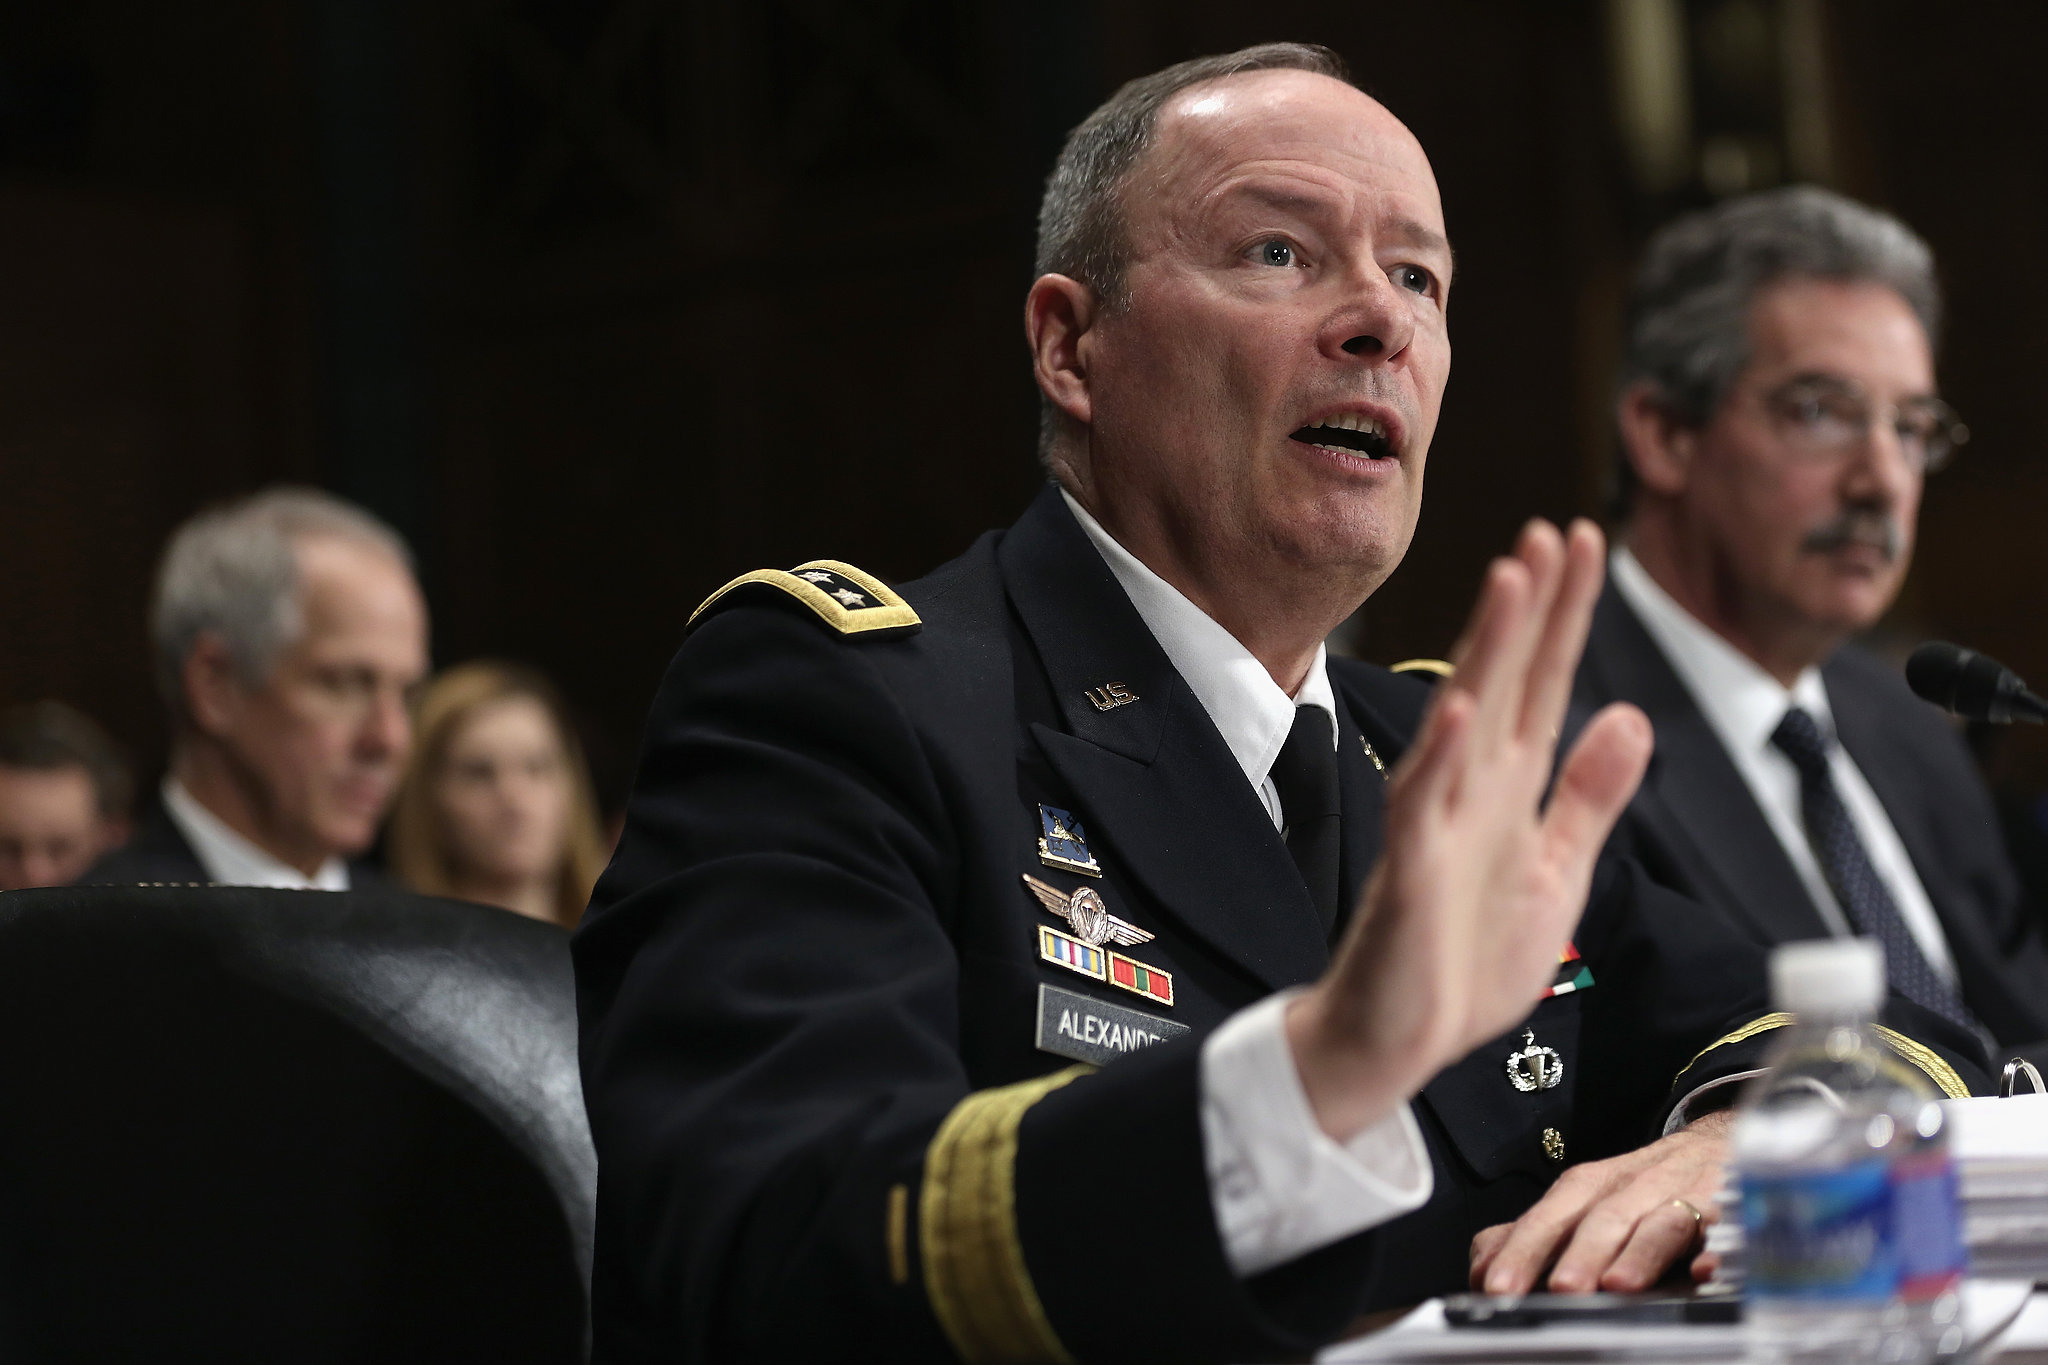 NSA director Keith Alexander testifies before the Senate on Dec. 11, 2013.